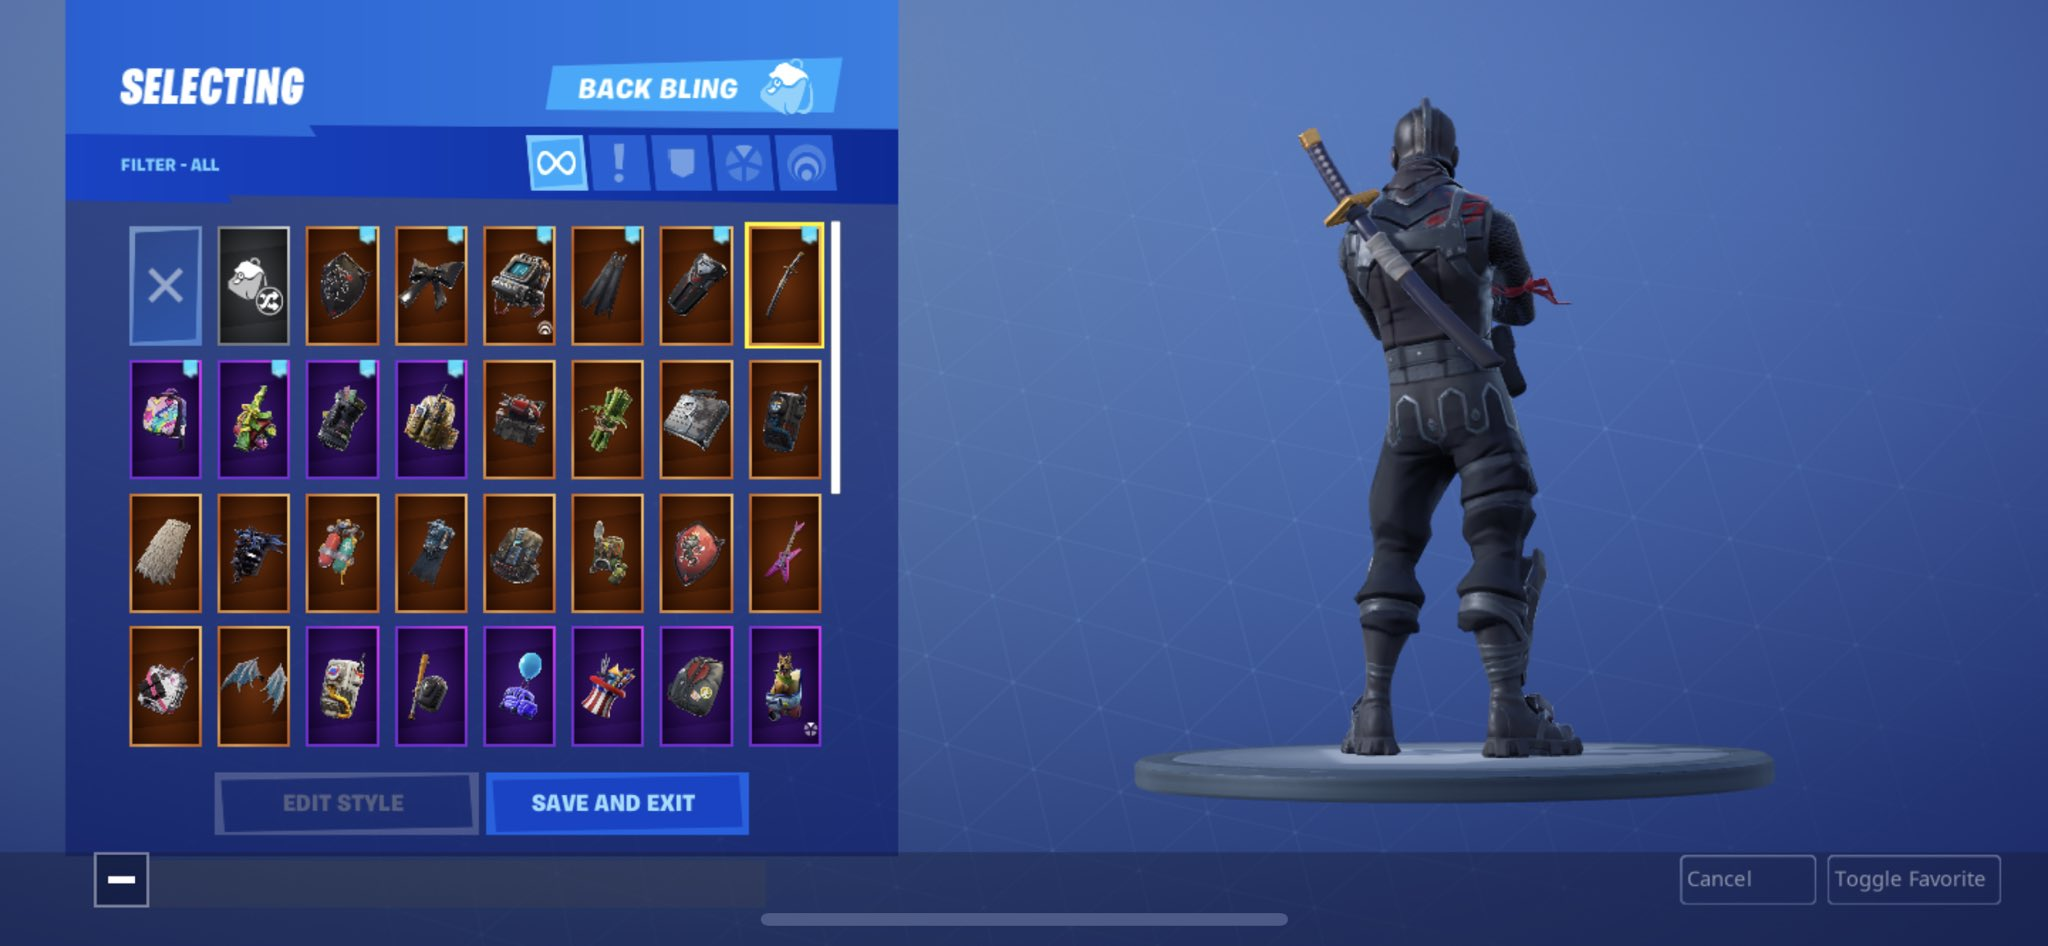 Supreme Trapper On Twitter Going For Very Cheap Paypal Or Psn Giftcard Or Itunes Giftcard Dm To Buy Fortnite Ghoultrooper Skulltrooper Fortniteaccount Renegaderaider Fortniteaccounts Fortniteaccountsforsale Fortniteaccountforsale